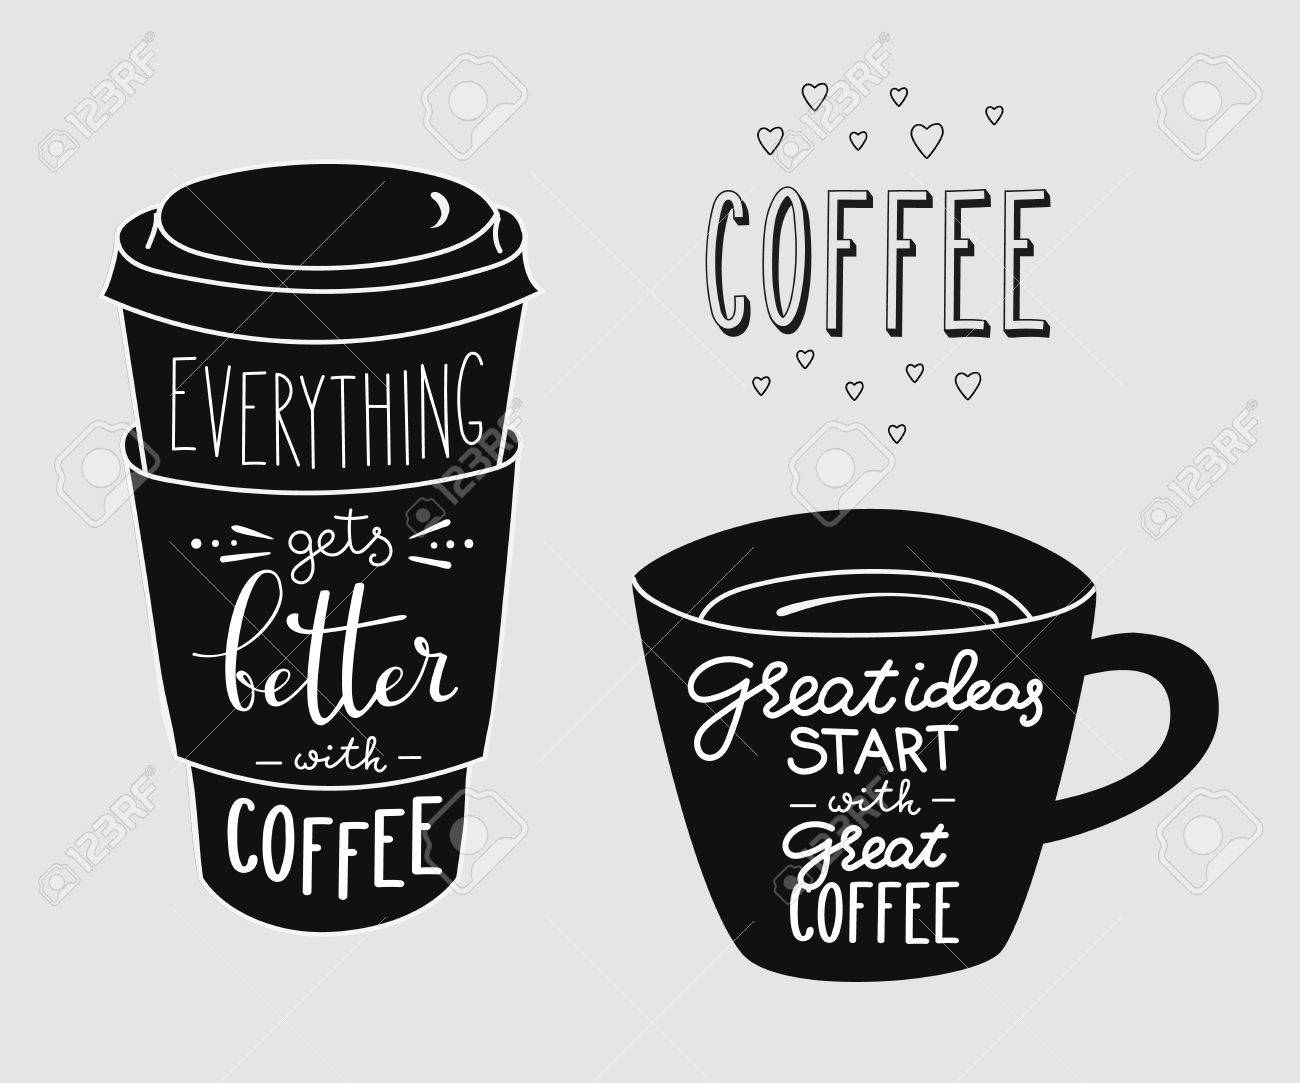 Everything gets better with coffee. Great ideas start with great coffee. Quote lettering on coffee cup shape set. Calligraphy style coffee quote. Coffee shop promotion motivation - 50002656